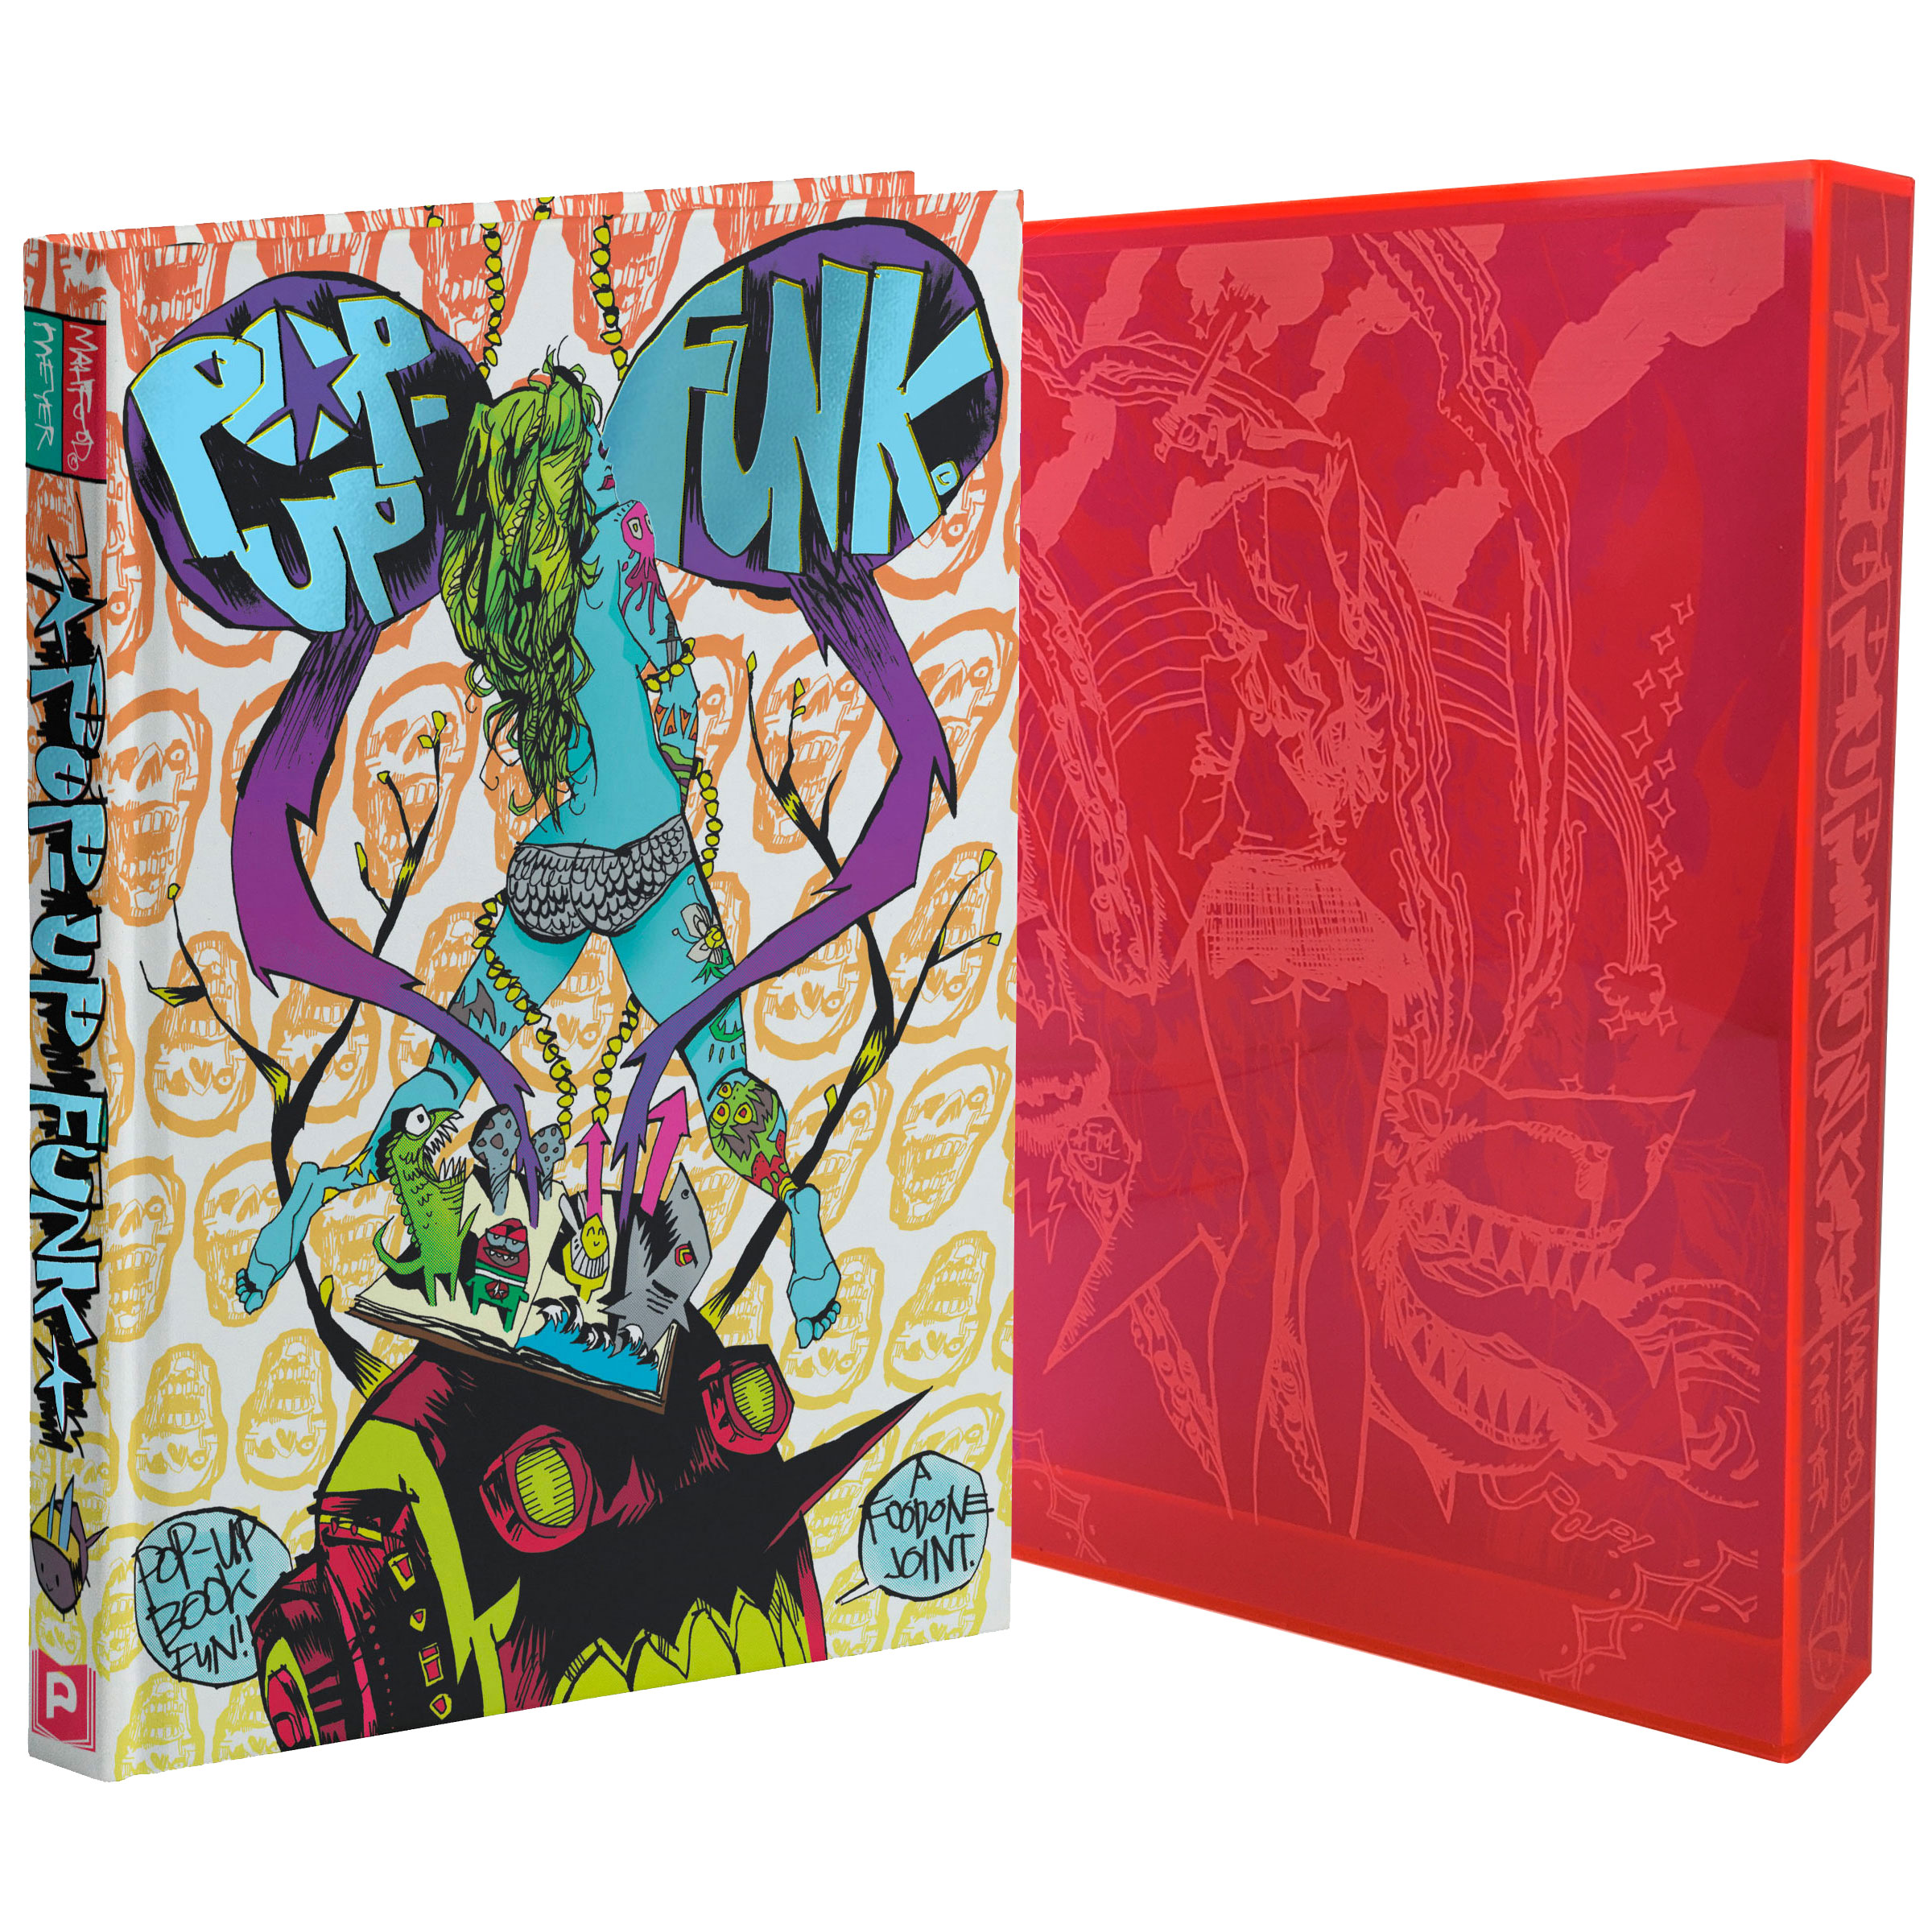 PRE ORDER Pop Up Funk: Neon Jive Edition